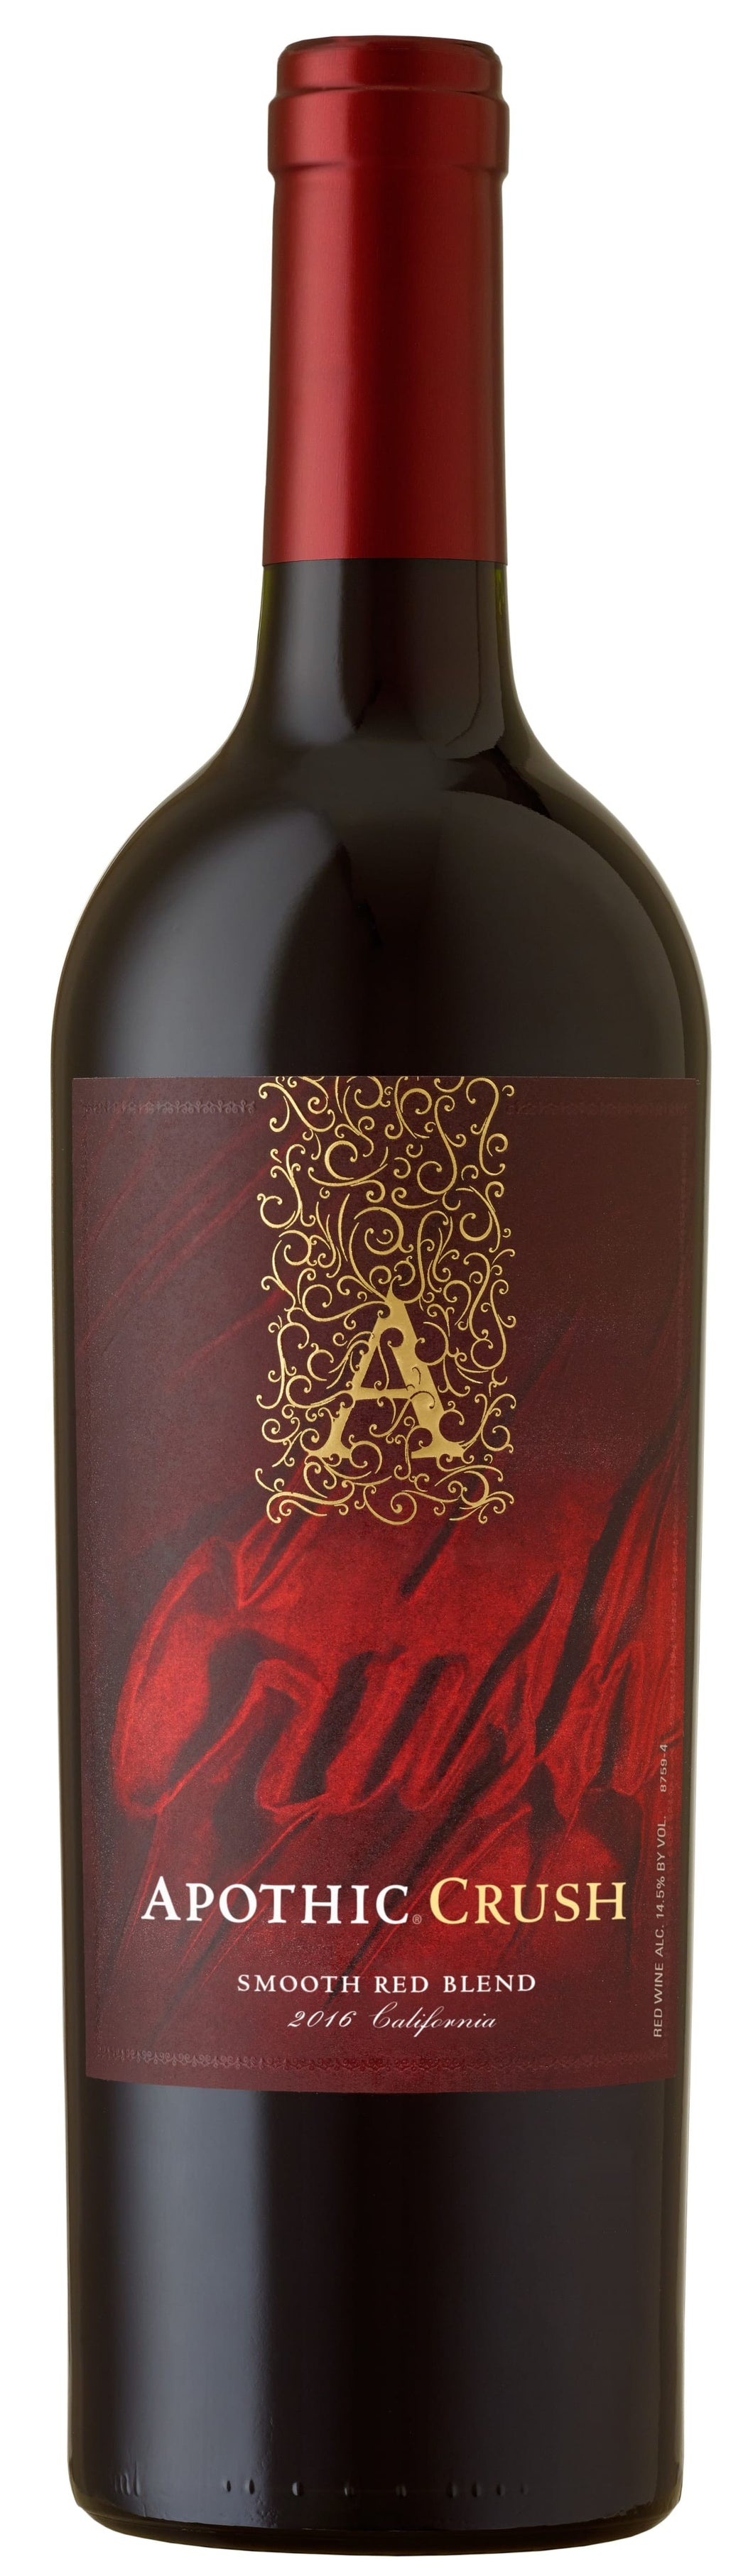 Apothic Crush Smooth Red Blend - Grapes & Hops Deli